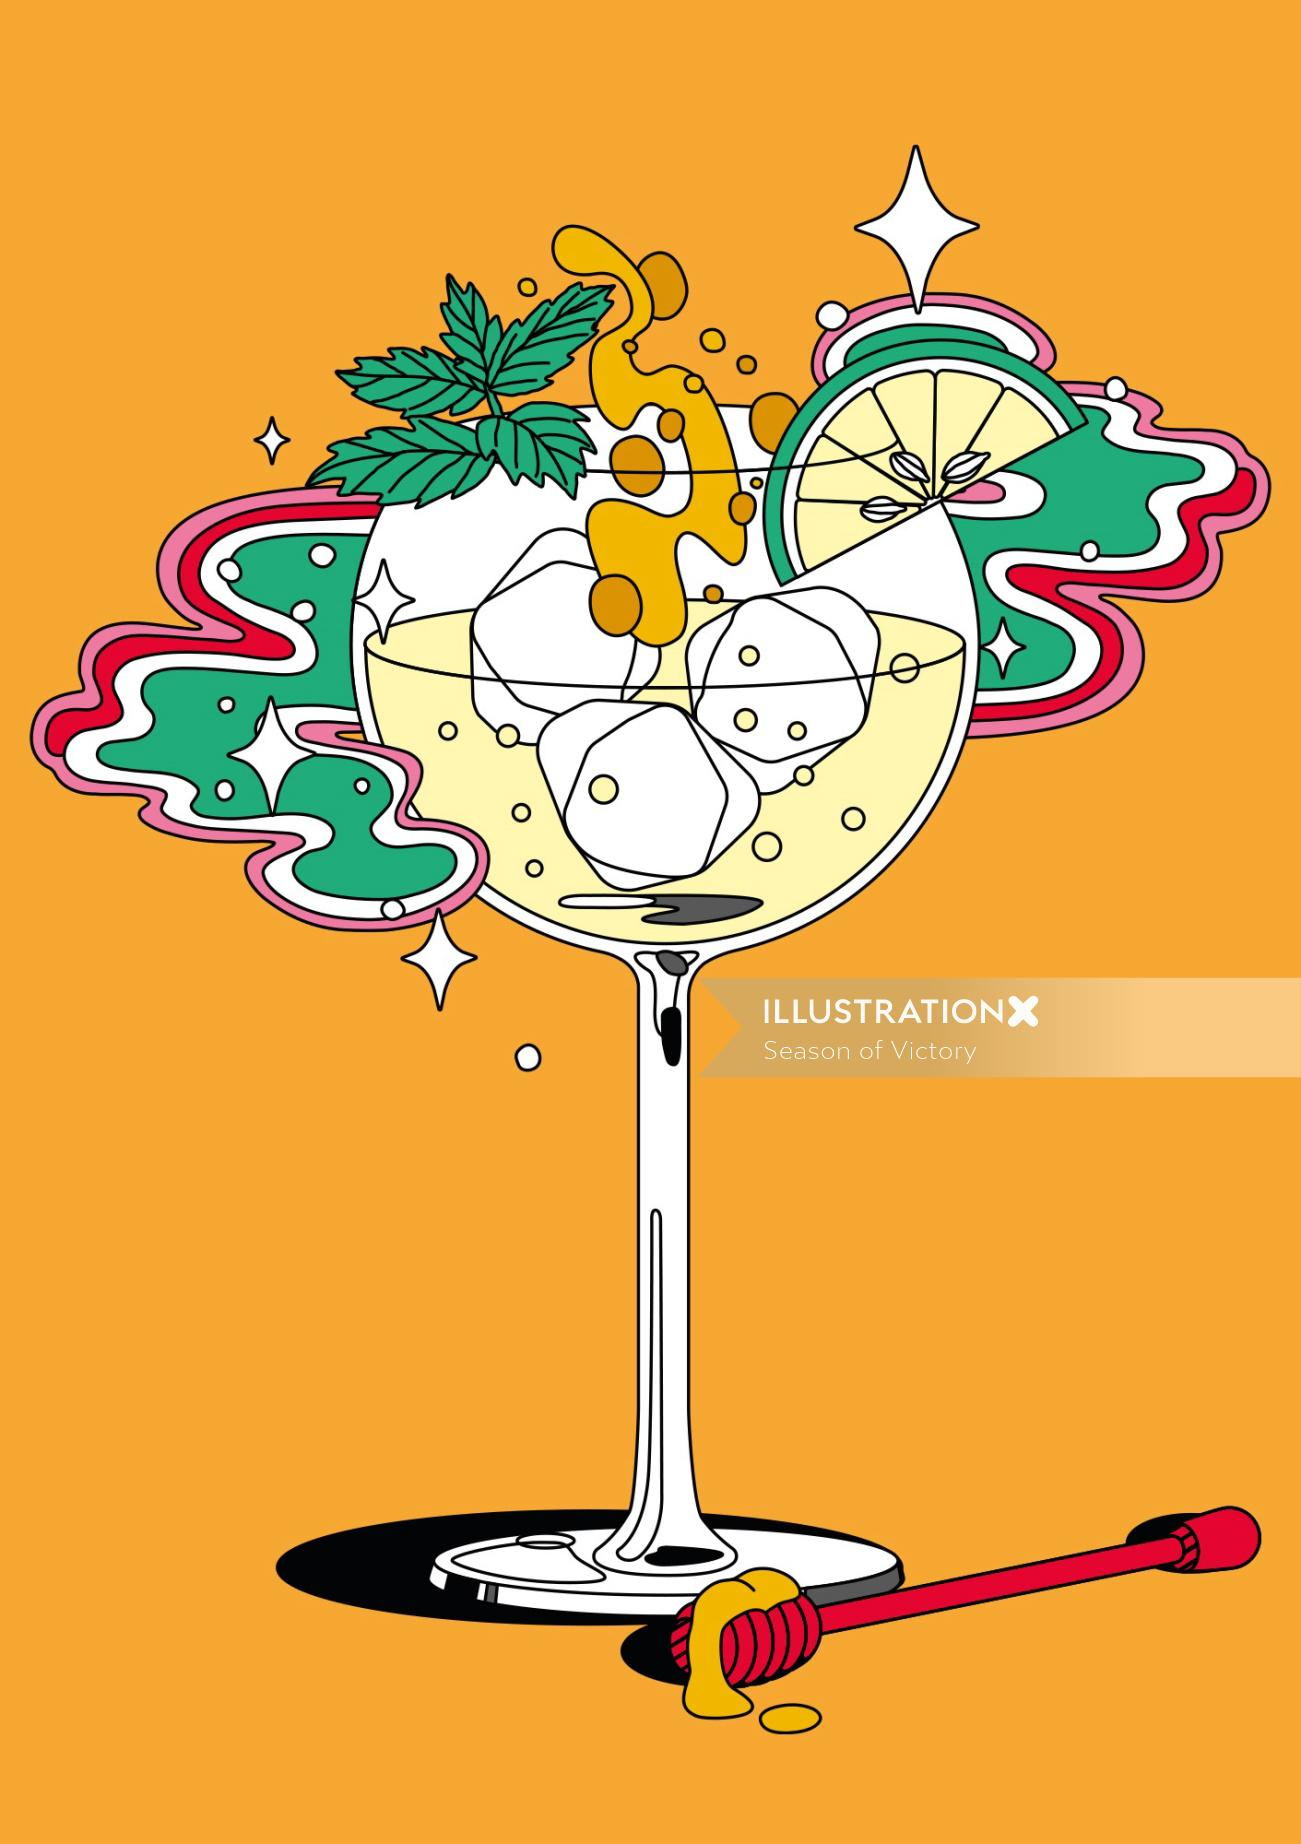 food & drink, food and beverage, gin, wine, gin illustration, spirits, editorial art, spot art, spot